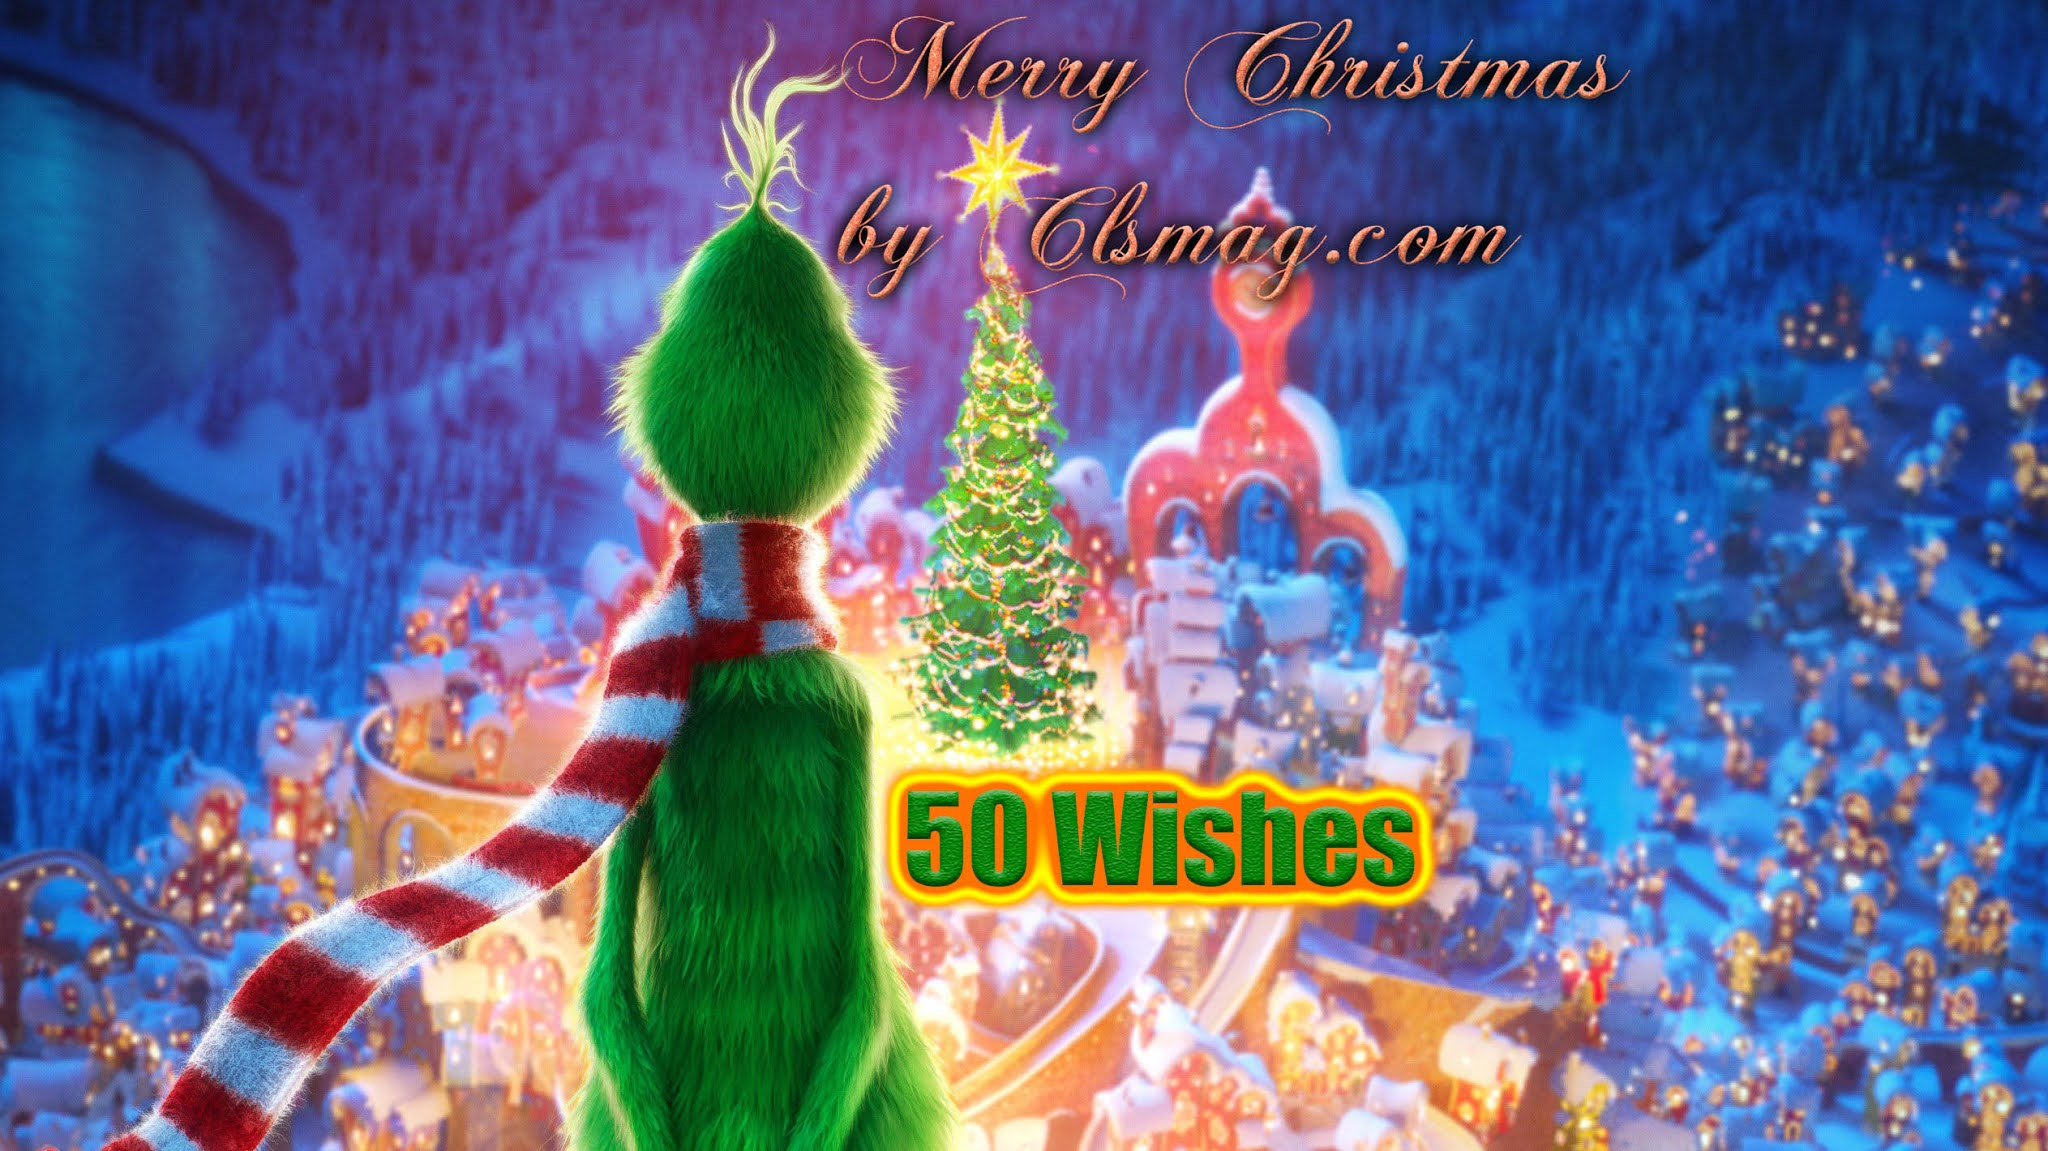 2020 50 Merry Christmas Wishes and Messages